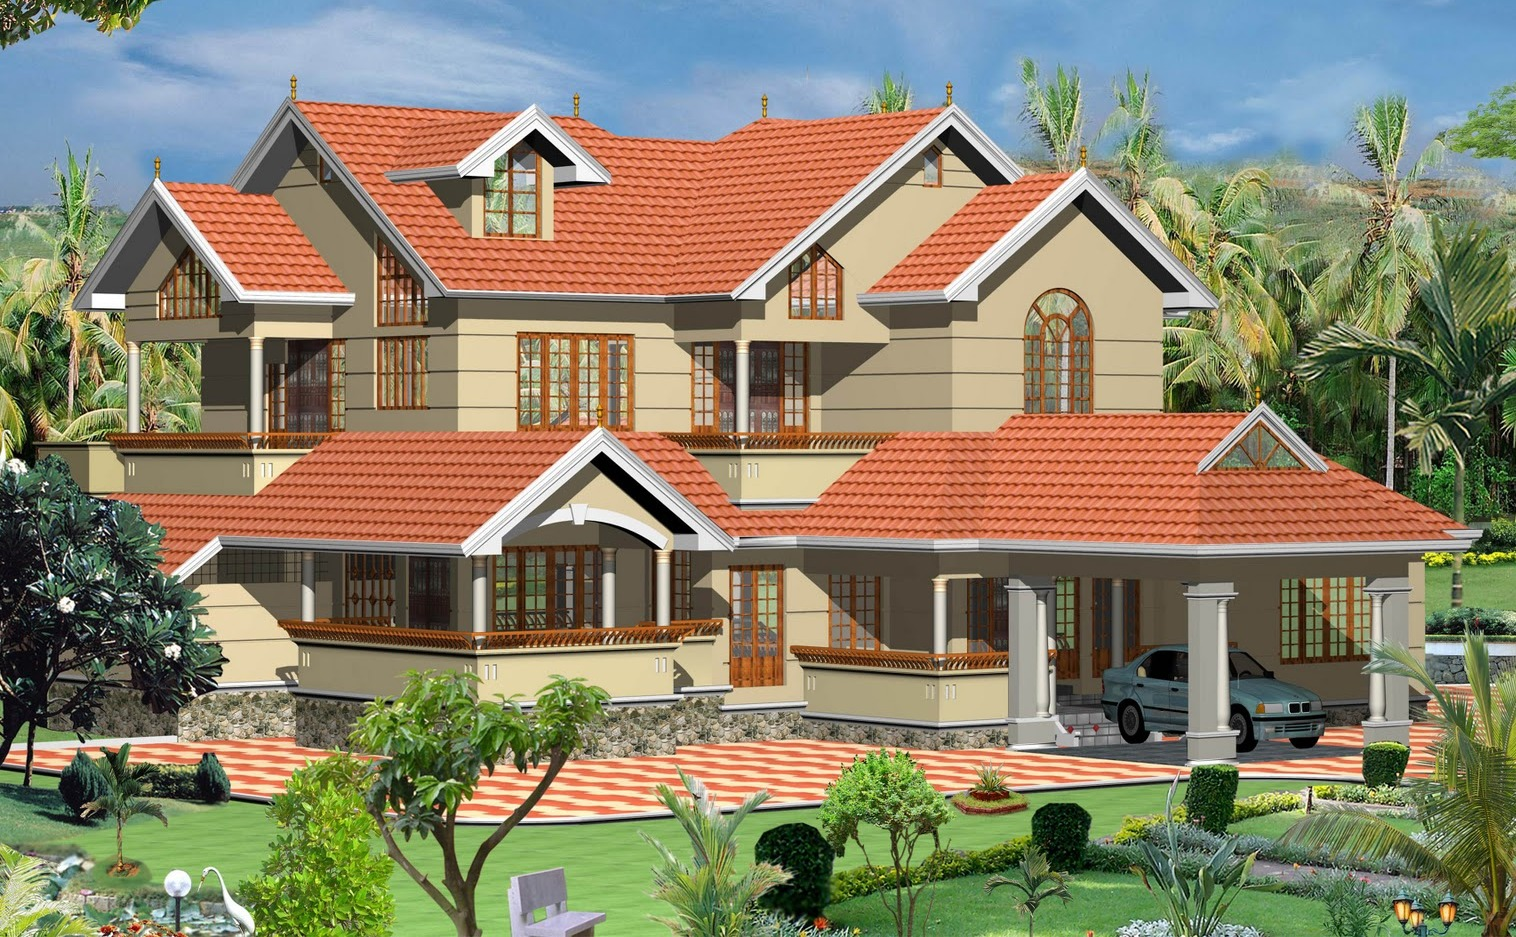 Architectural Plans For Houses Unique House Plans